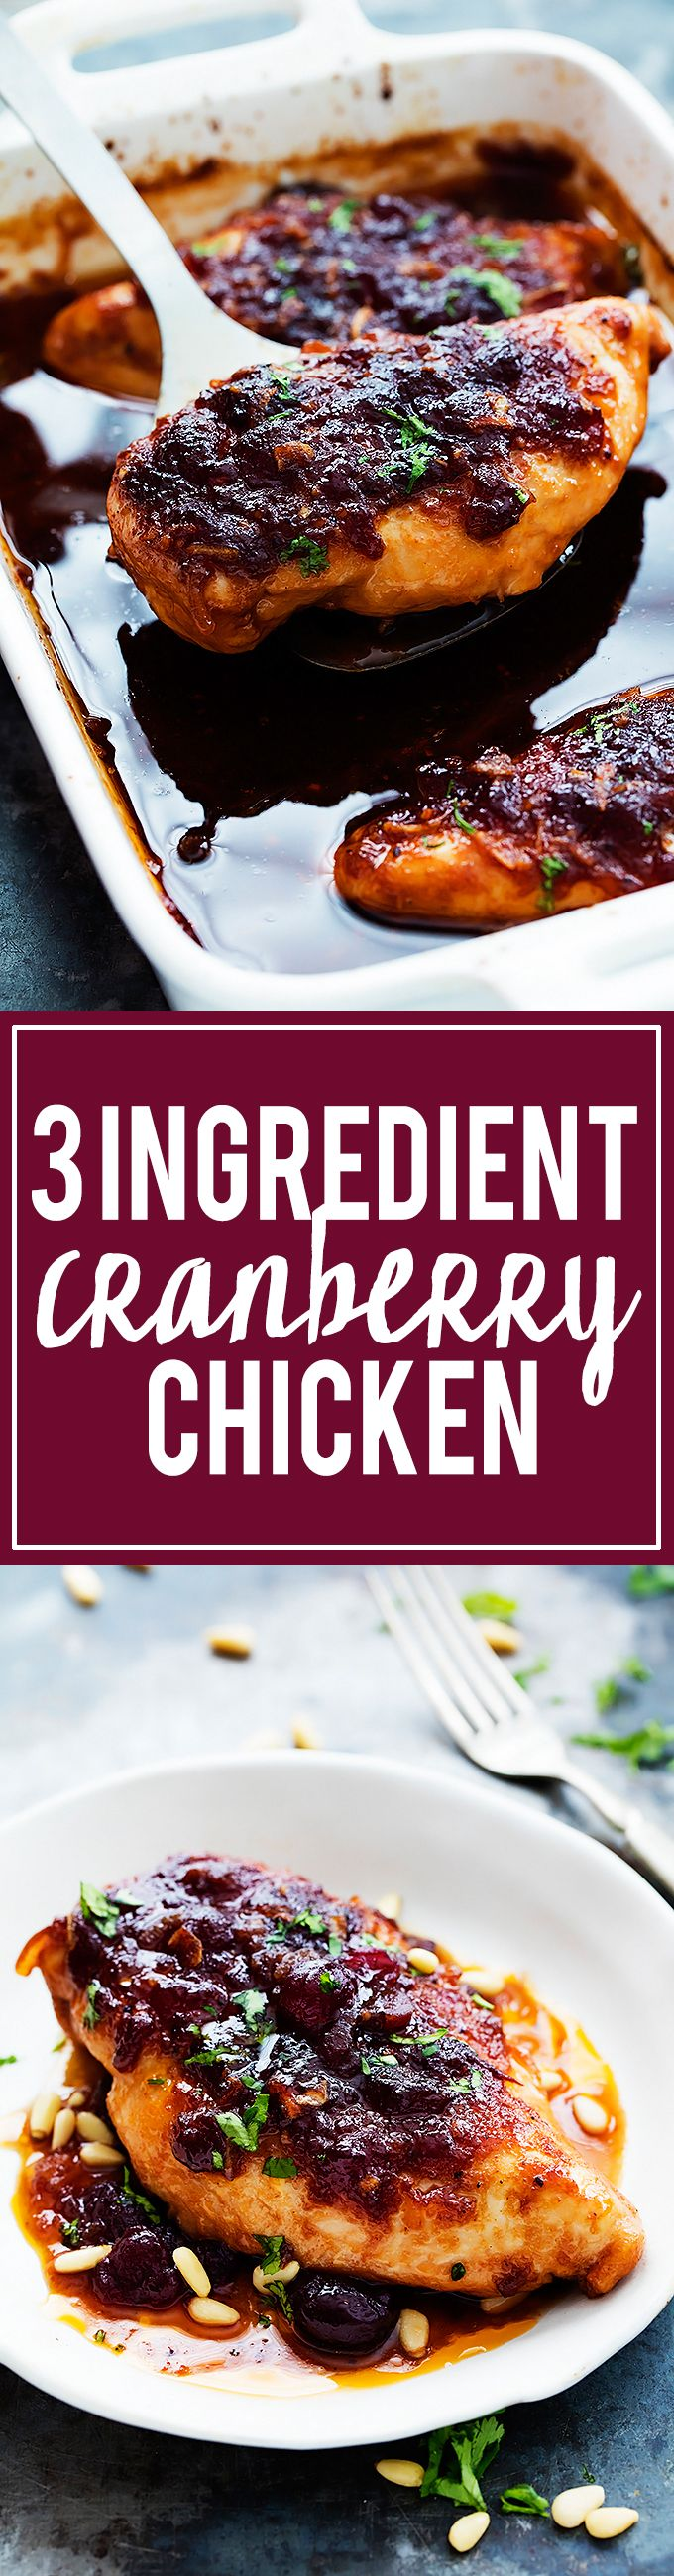 3 Ingredient Slow Cooker Cranberry Chicken | Creme de la Crumb